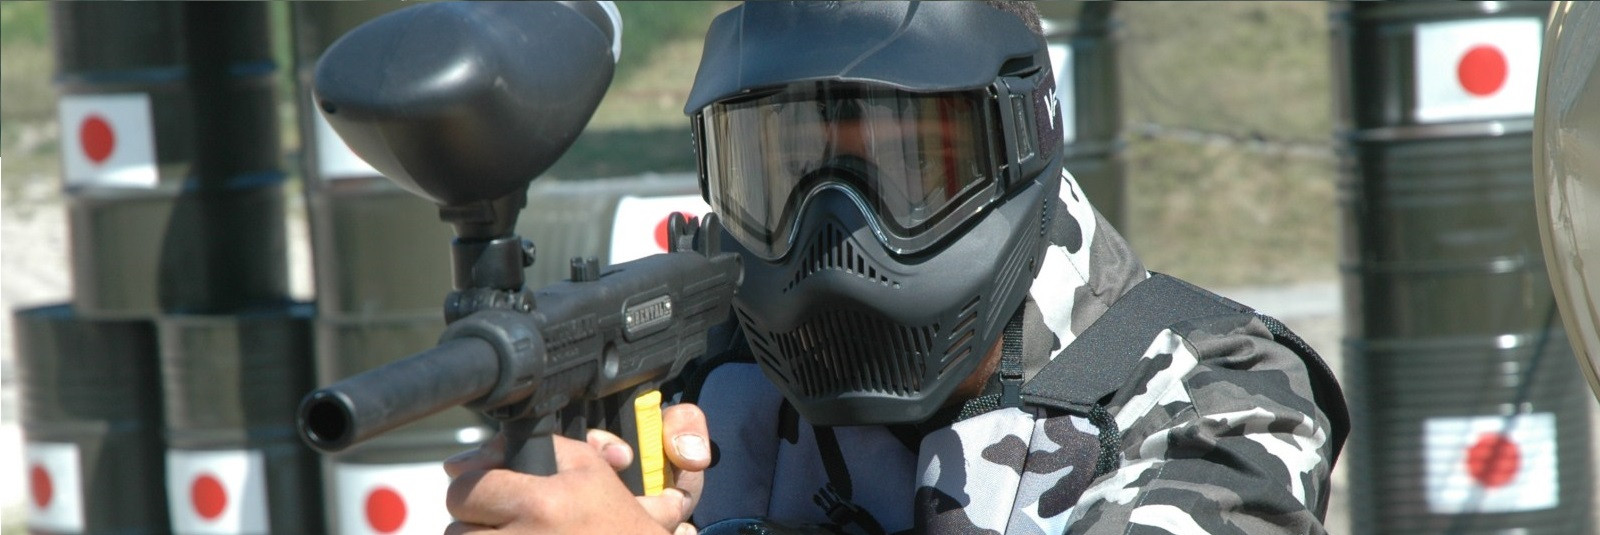 Solislider-paintball-1